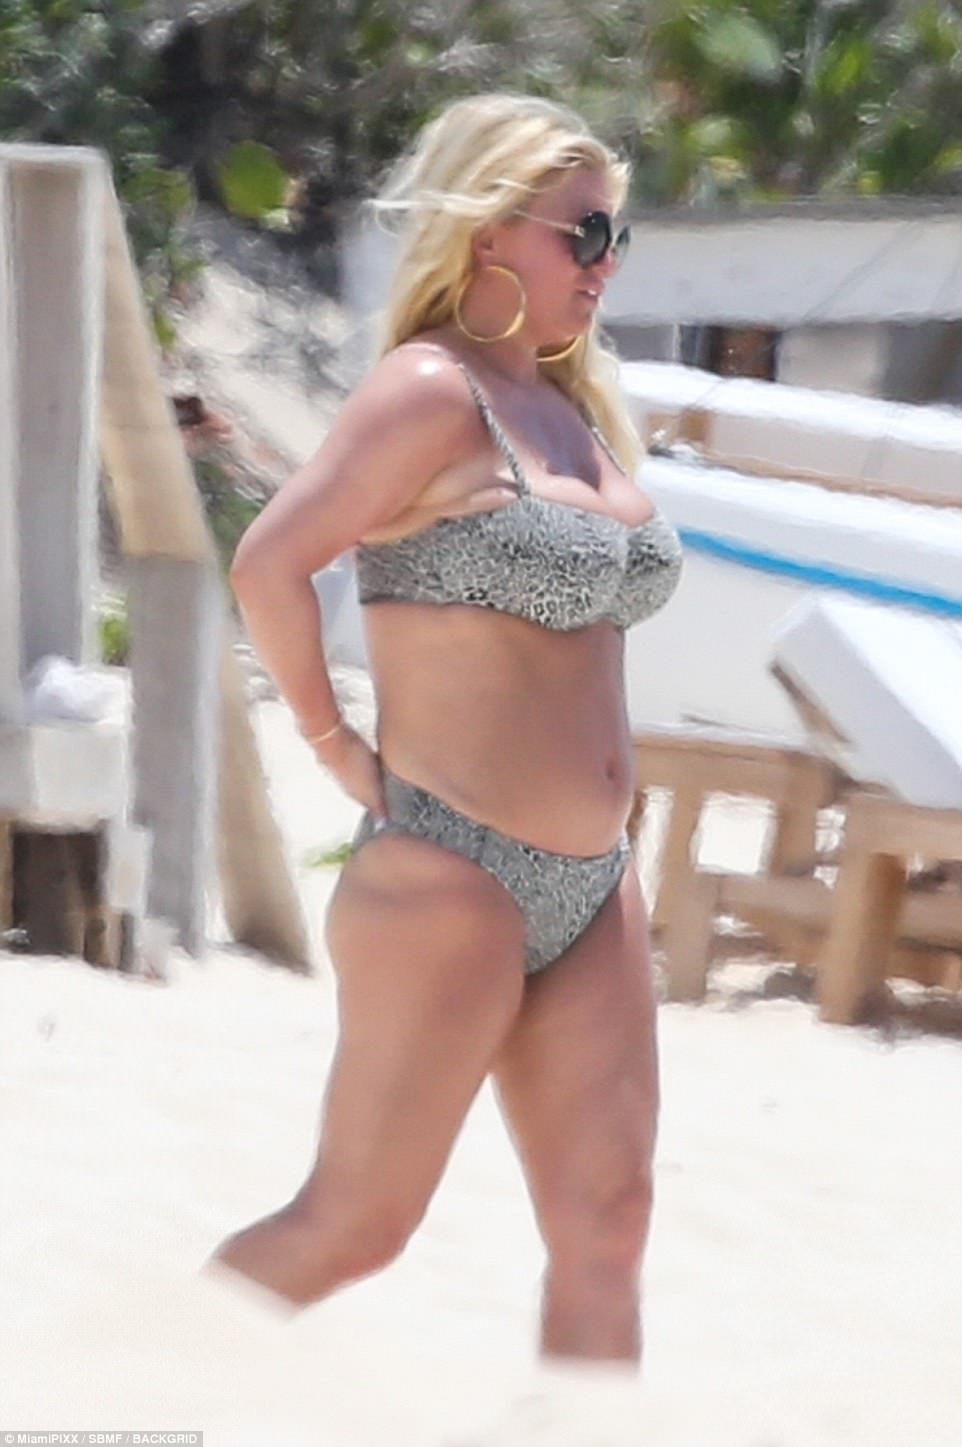 professional makeup chair uk french country dining chairs with arms jessica simpson flaunts body in leopard print bikini on bahamas getaway | daily mail online